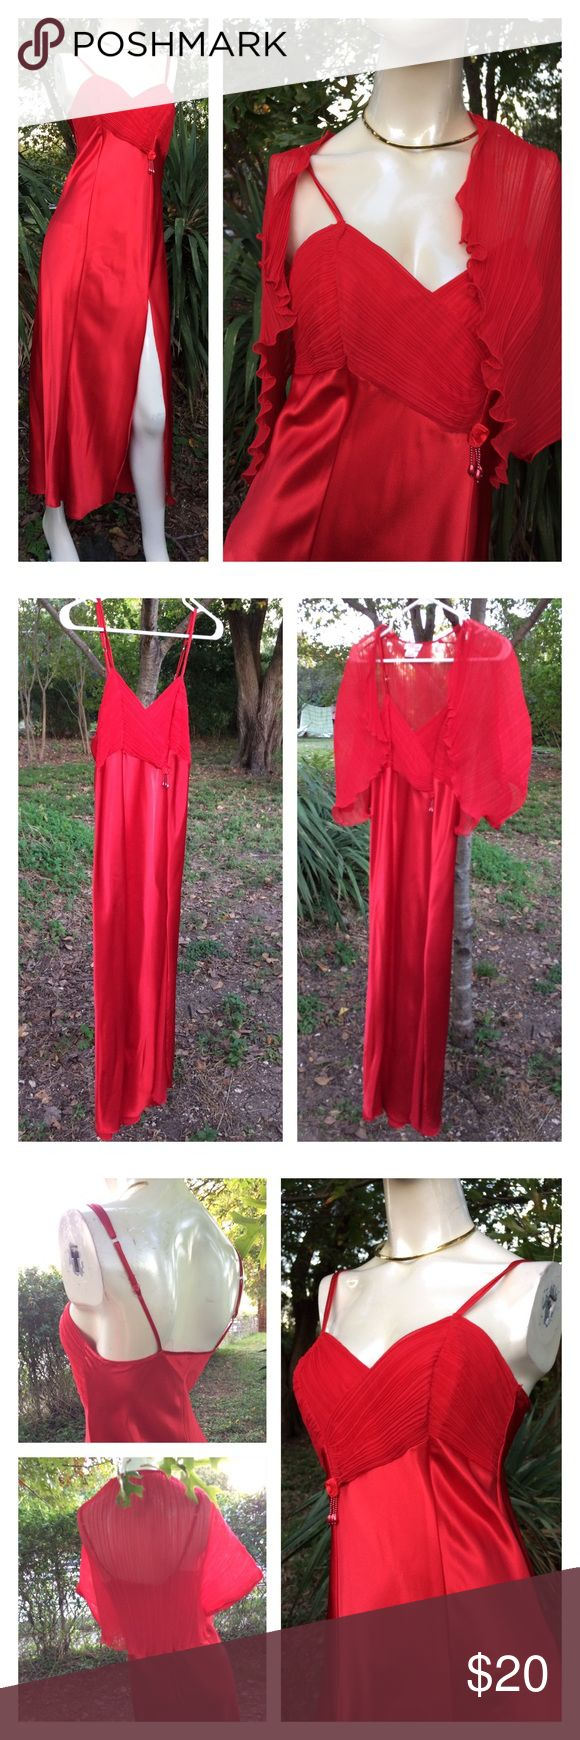 """Vtg Silky Red Chiffon Neglige & Shawl 80s Romantic Lipstick red long silky négligée with matching chiffon shawl - in excellent condition! No snags, stains, etc. Super sexy 💋💄💋 Tag is marked medium. 100% Poly. Measurements laid flat-  The shrug is free size, OSFM w 7.5"""" arm opening.  Neglige Shoulder to shoulder: n/a Underarm to underarm: 15.5"""" Waist: 17.5"""" Hips: 20"""" Shoulder to Hem: 53.5"""" Sleeve: n/a Thanks! Vintage Intimates & Sleepwear Chemises & Slips"""